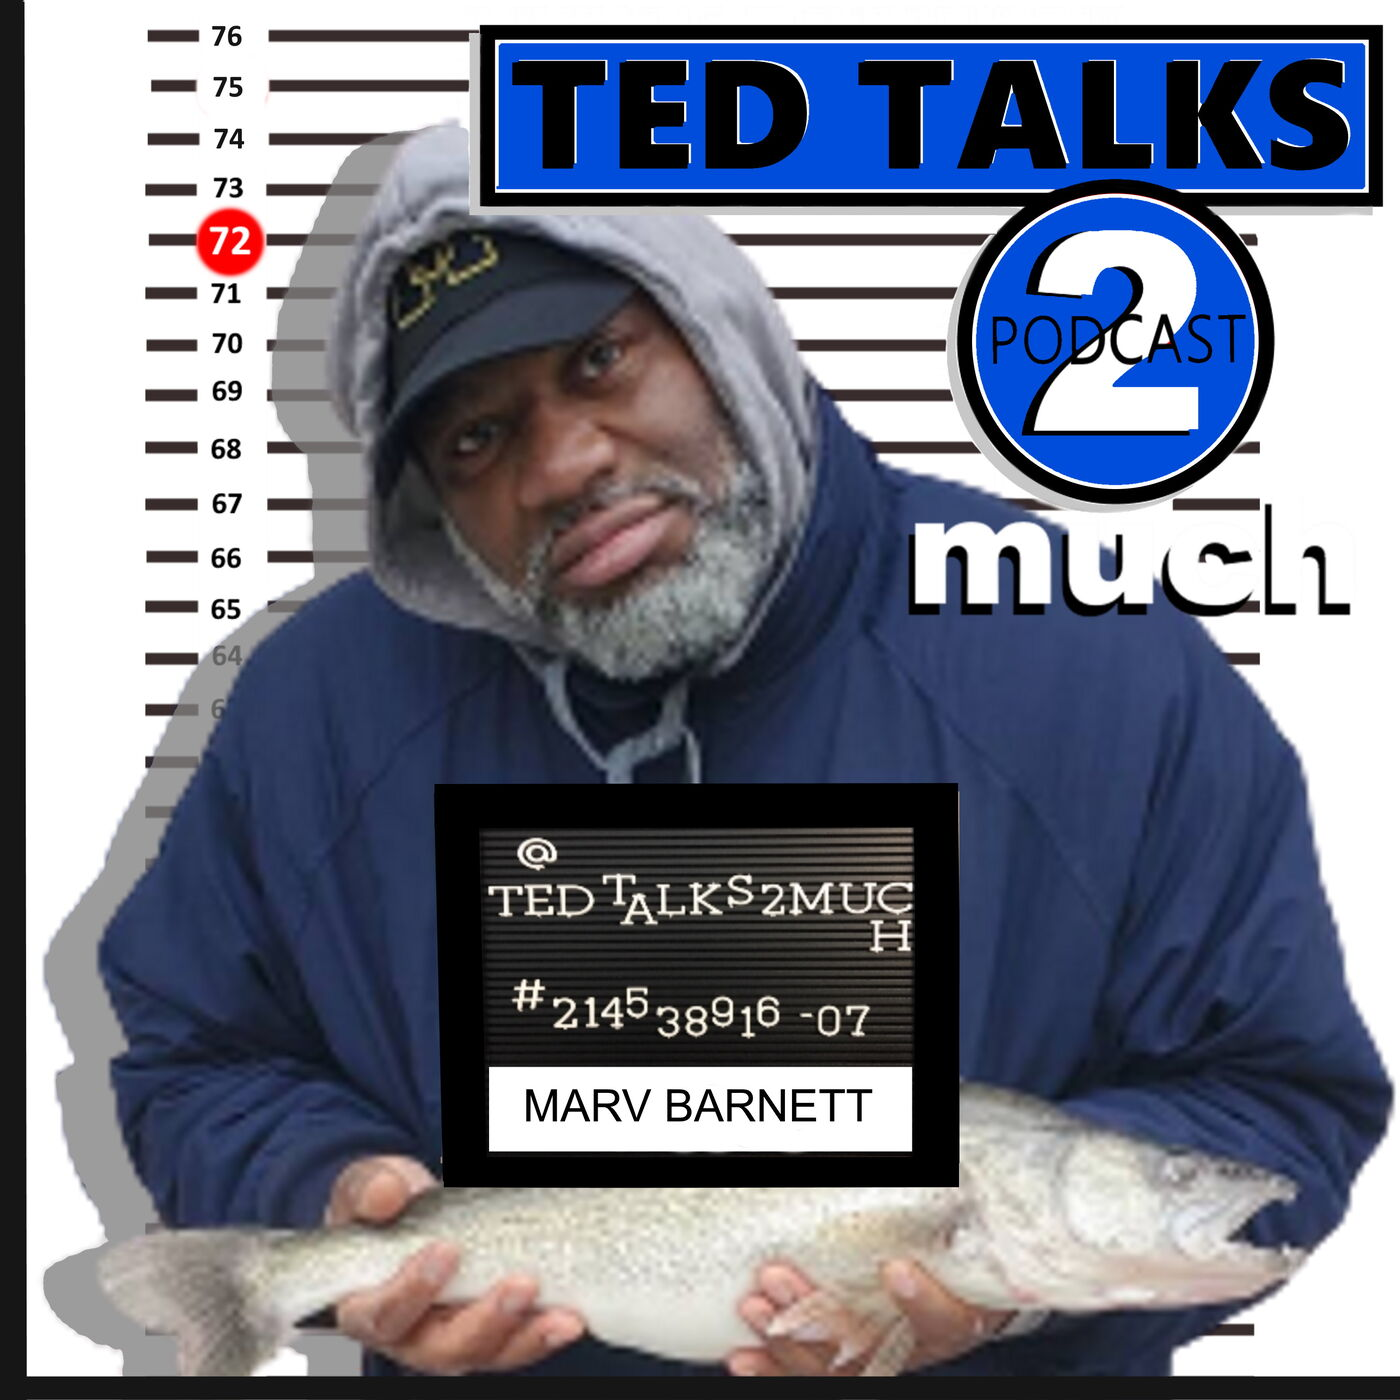 TED TALKS 2 Marv Barnett (Way 2 Much)... about the Future of Comedy, Street Language and Surviving Covid 19.